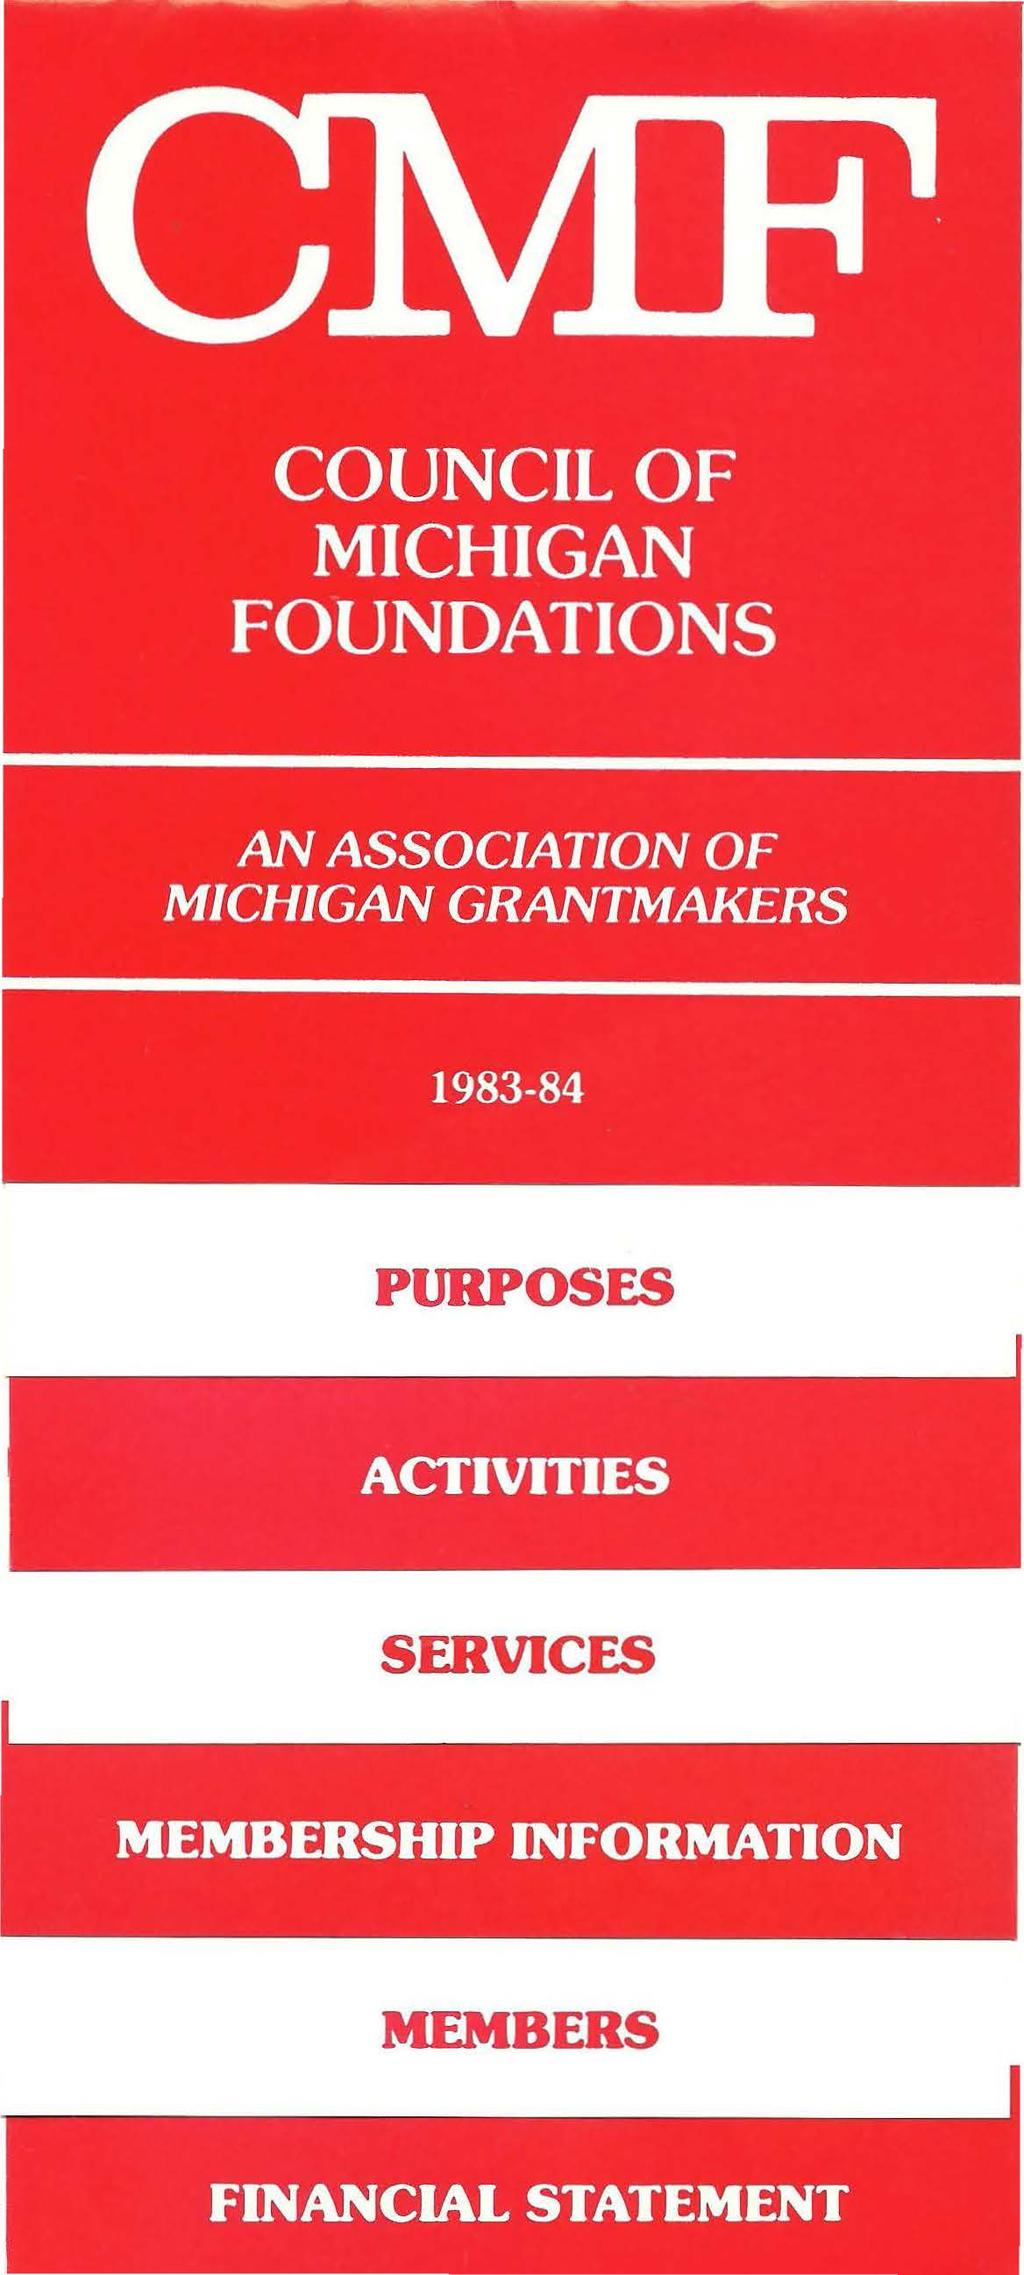 AN ASSOCIATION OF MICHIGAN GRANTMAKERS